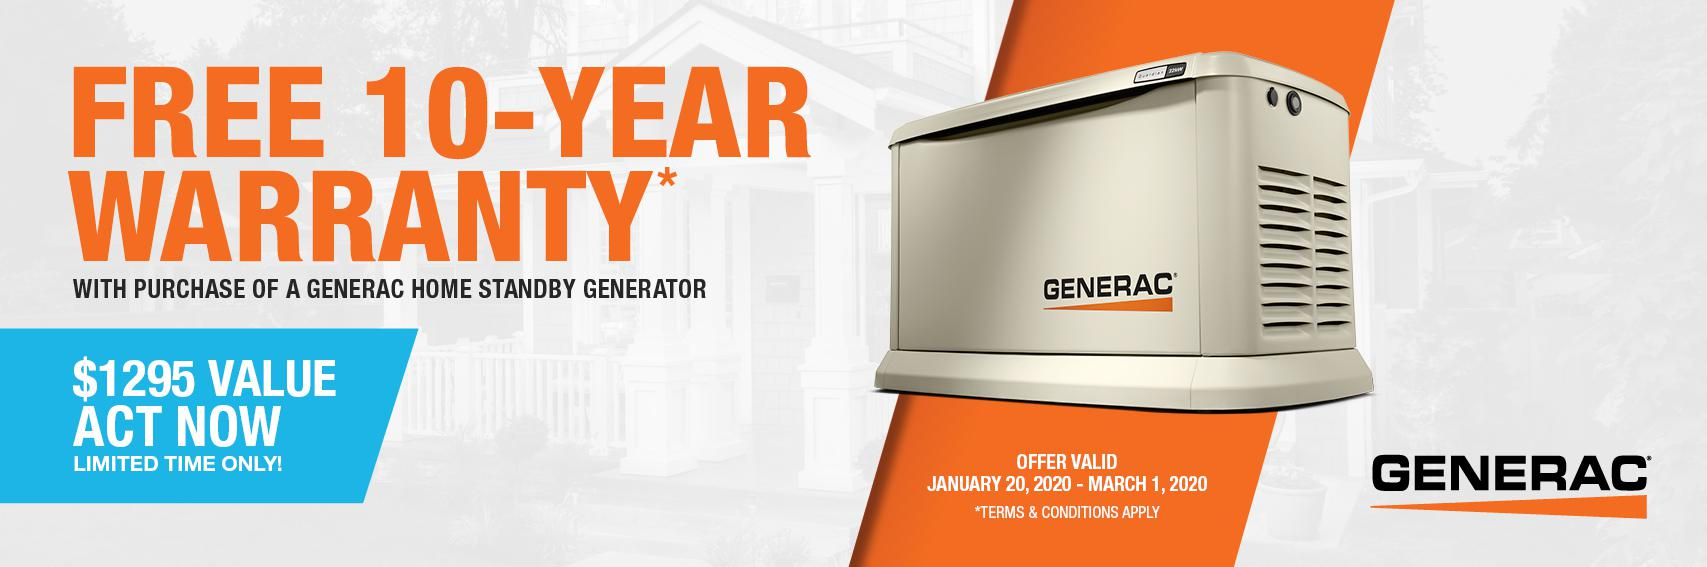 Homestandby Generator Deal | Warranty Offer | Generac Dealer | Toronto, ON